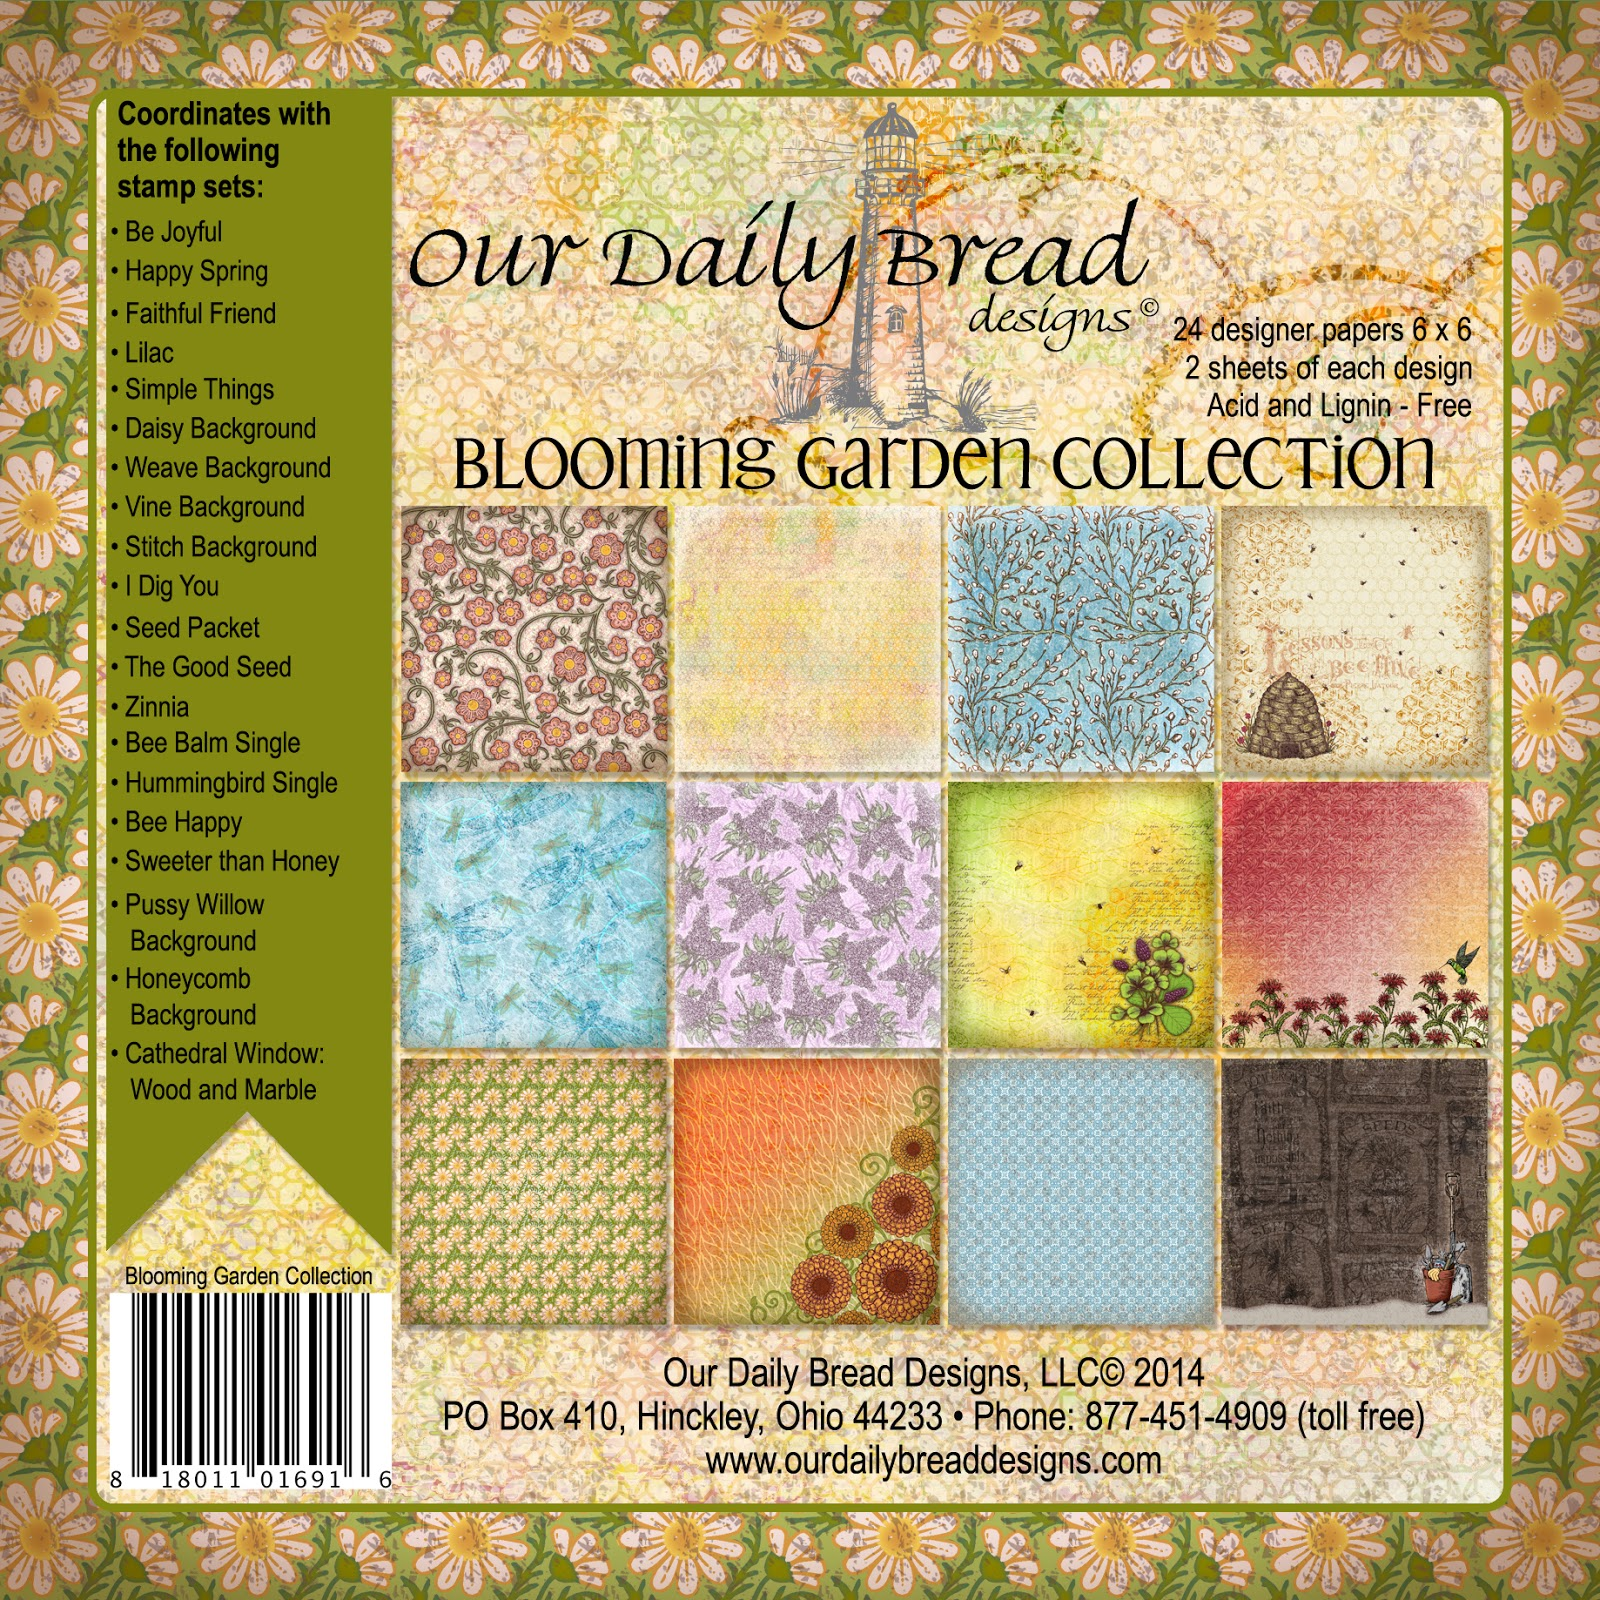 http://www.ourdailybreaddesigns.com/index.php/blooming-garden-collection-6x6-paper-pad.html